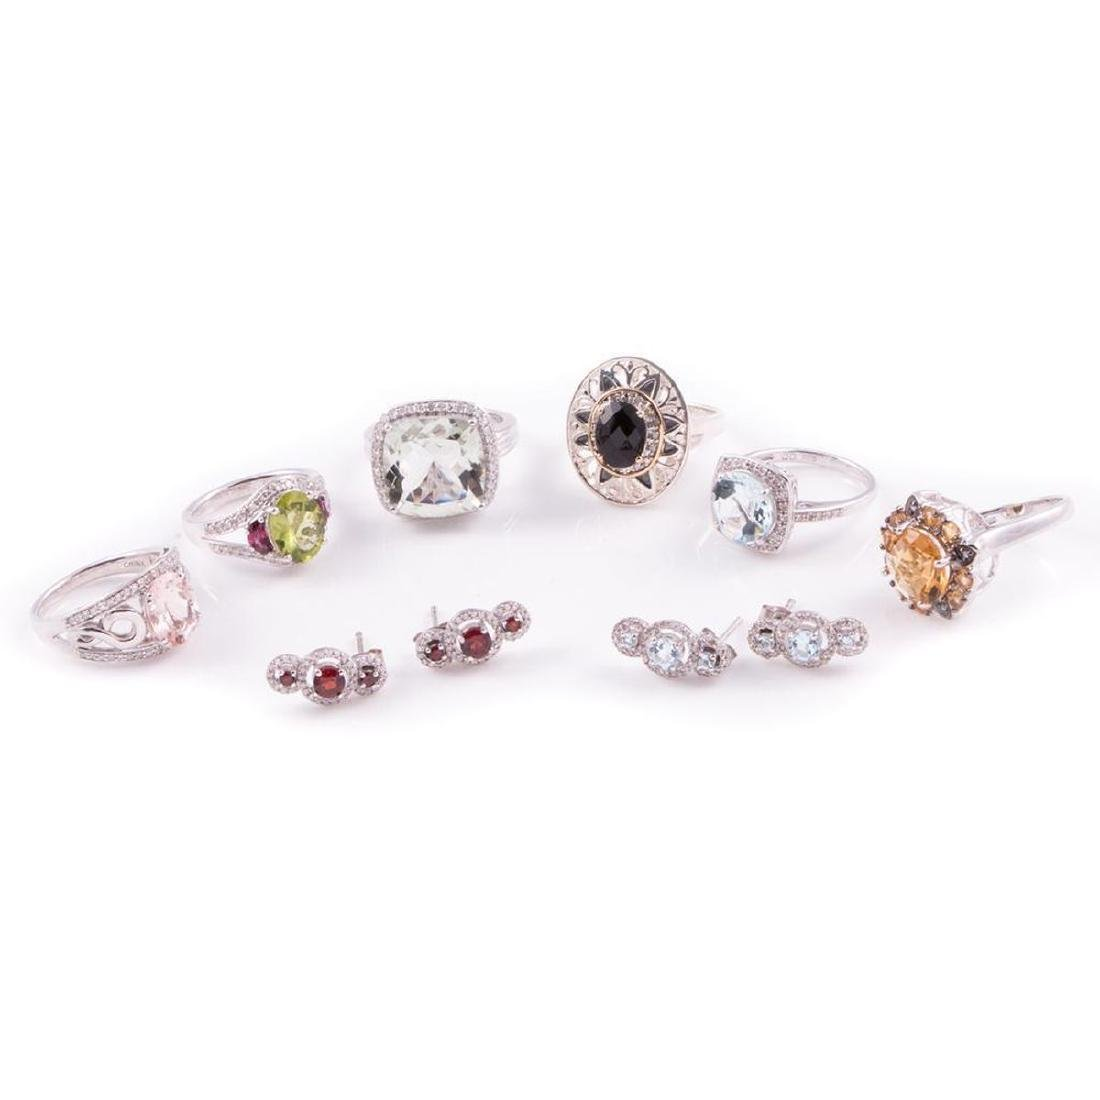 Gem-set, diamond and sterling silver jewelry